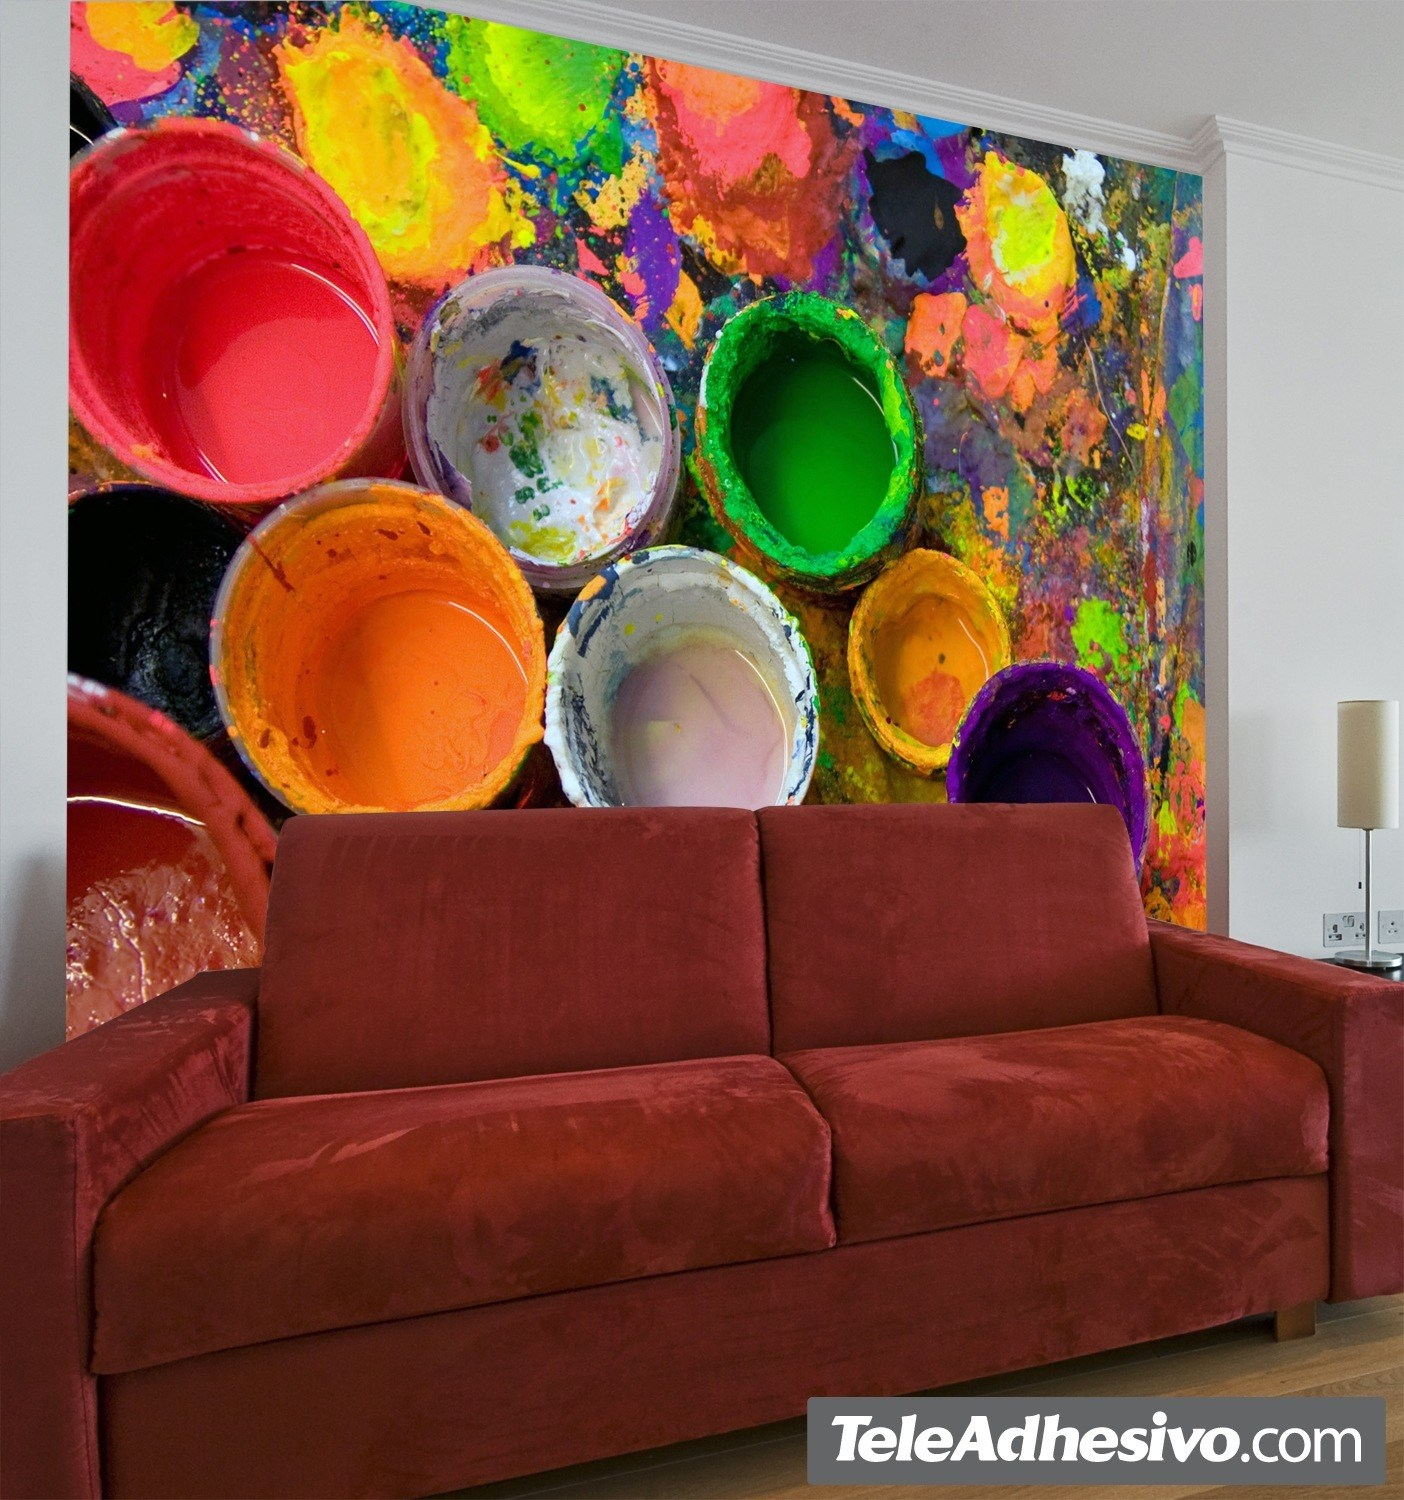 Wall Murals: Paint cans